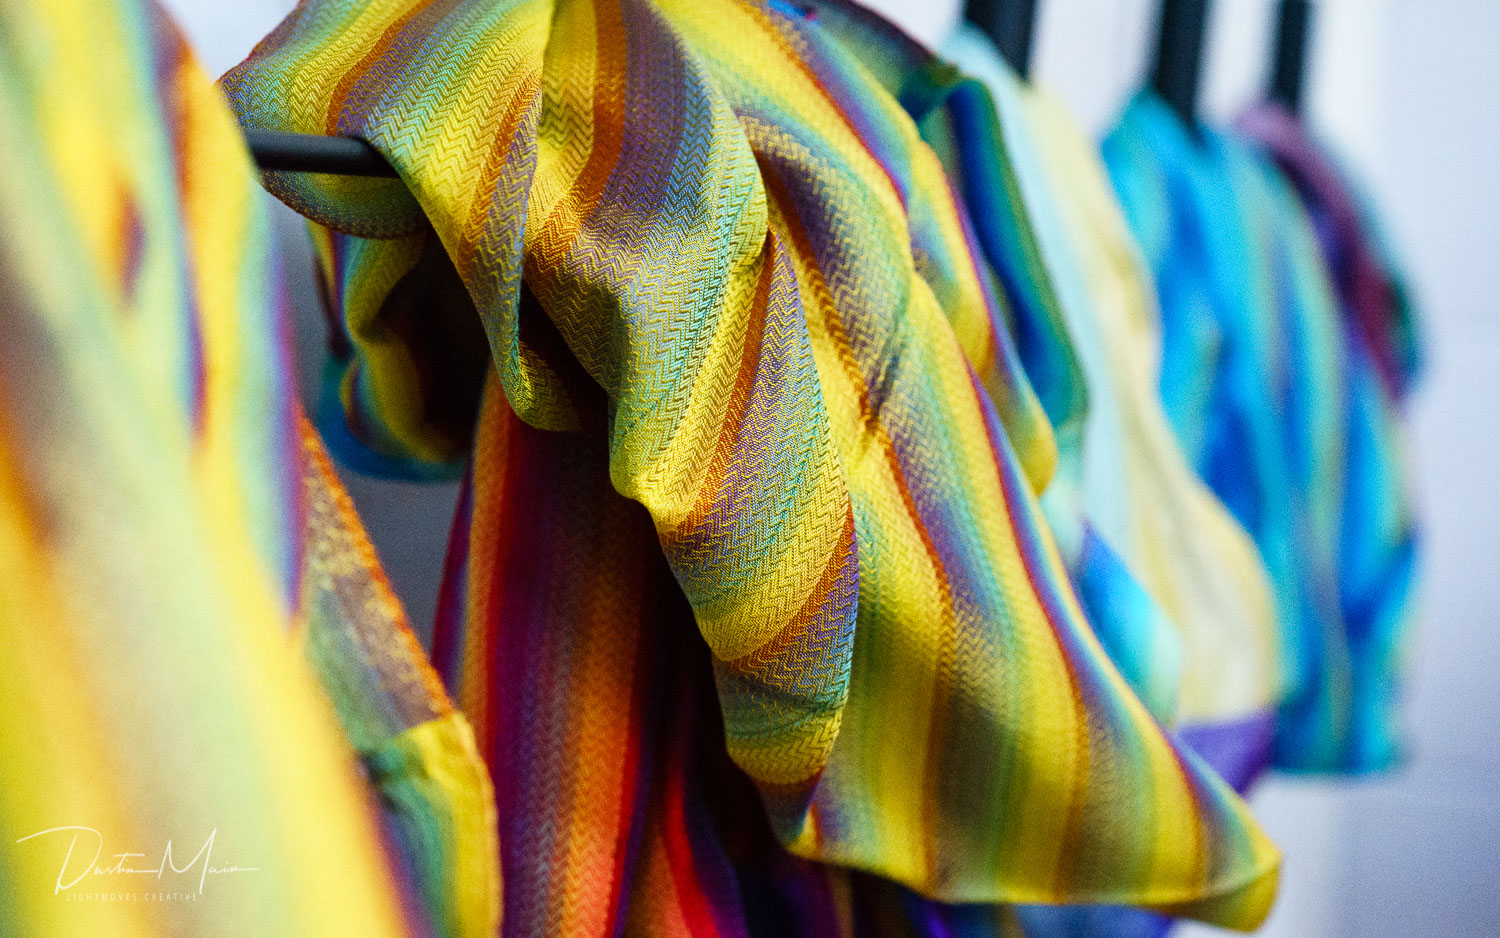 Scarves from FXB Myanmar at their sales office in Yangon. © Dustin Main 2017